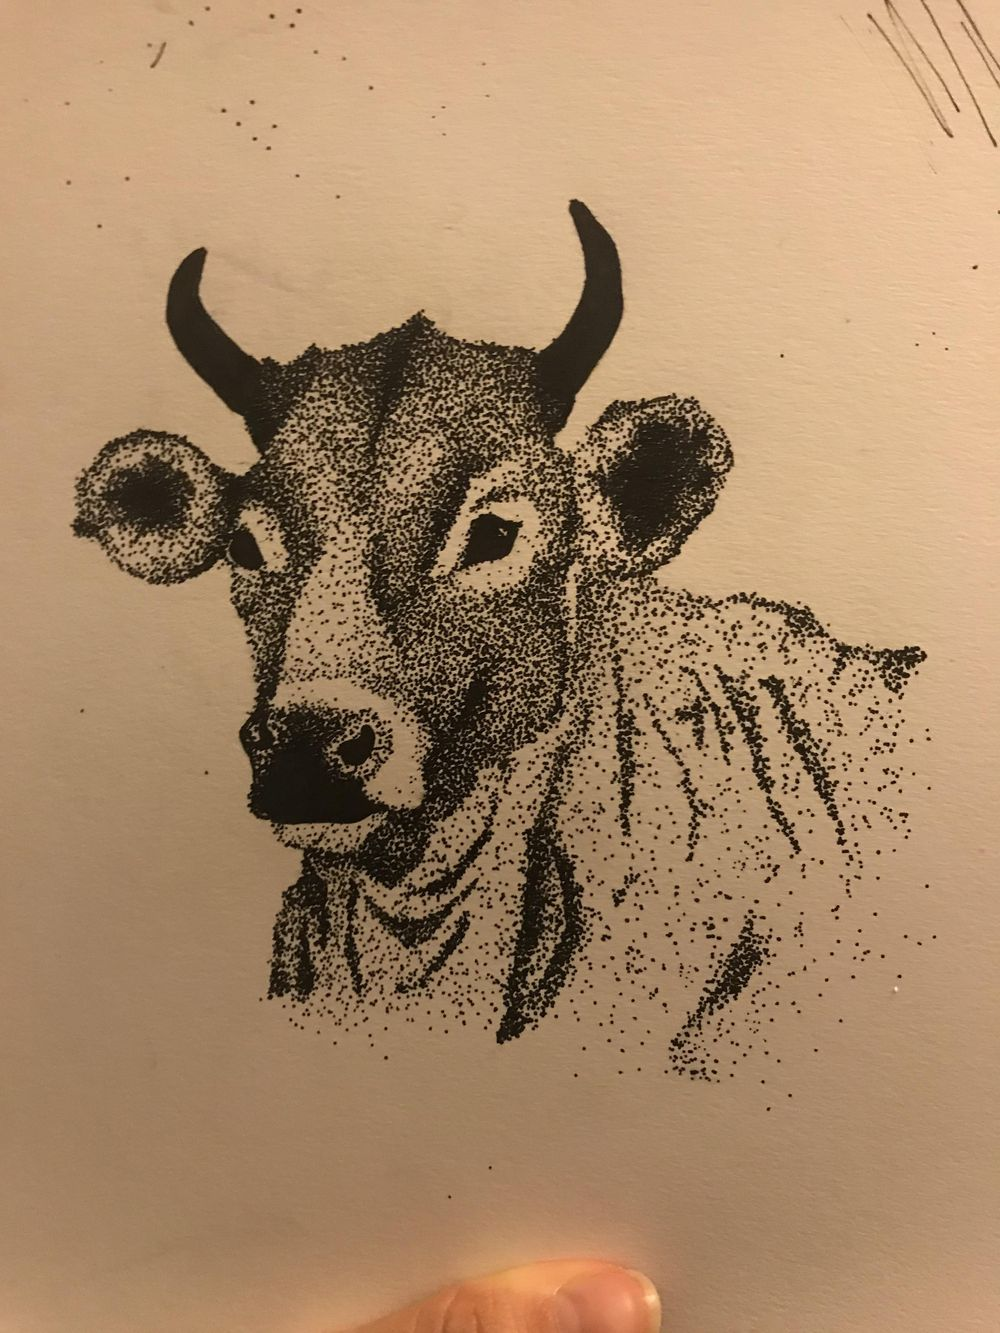 Bull - image 1 - student project